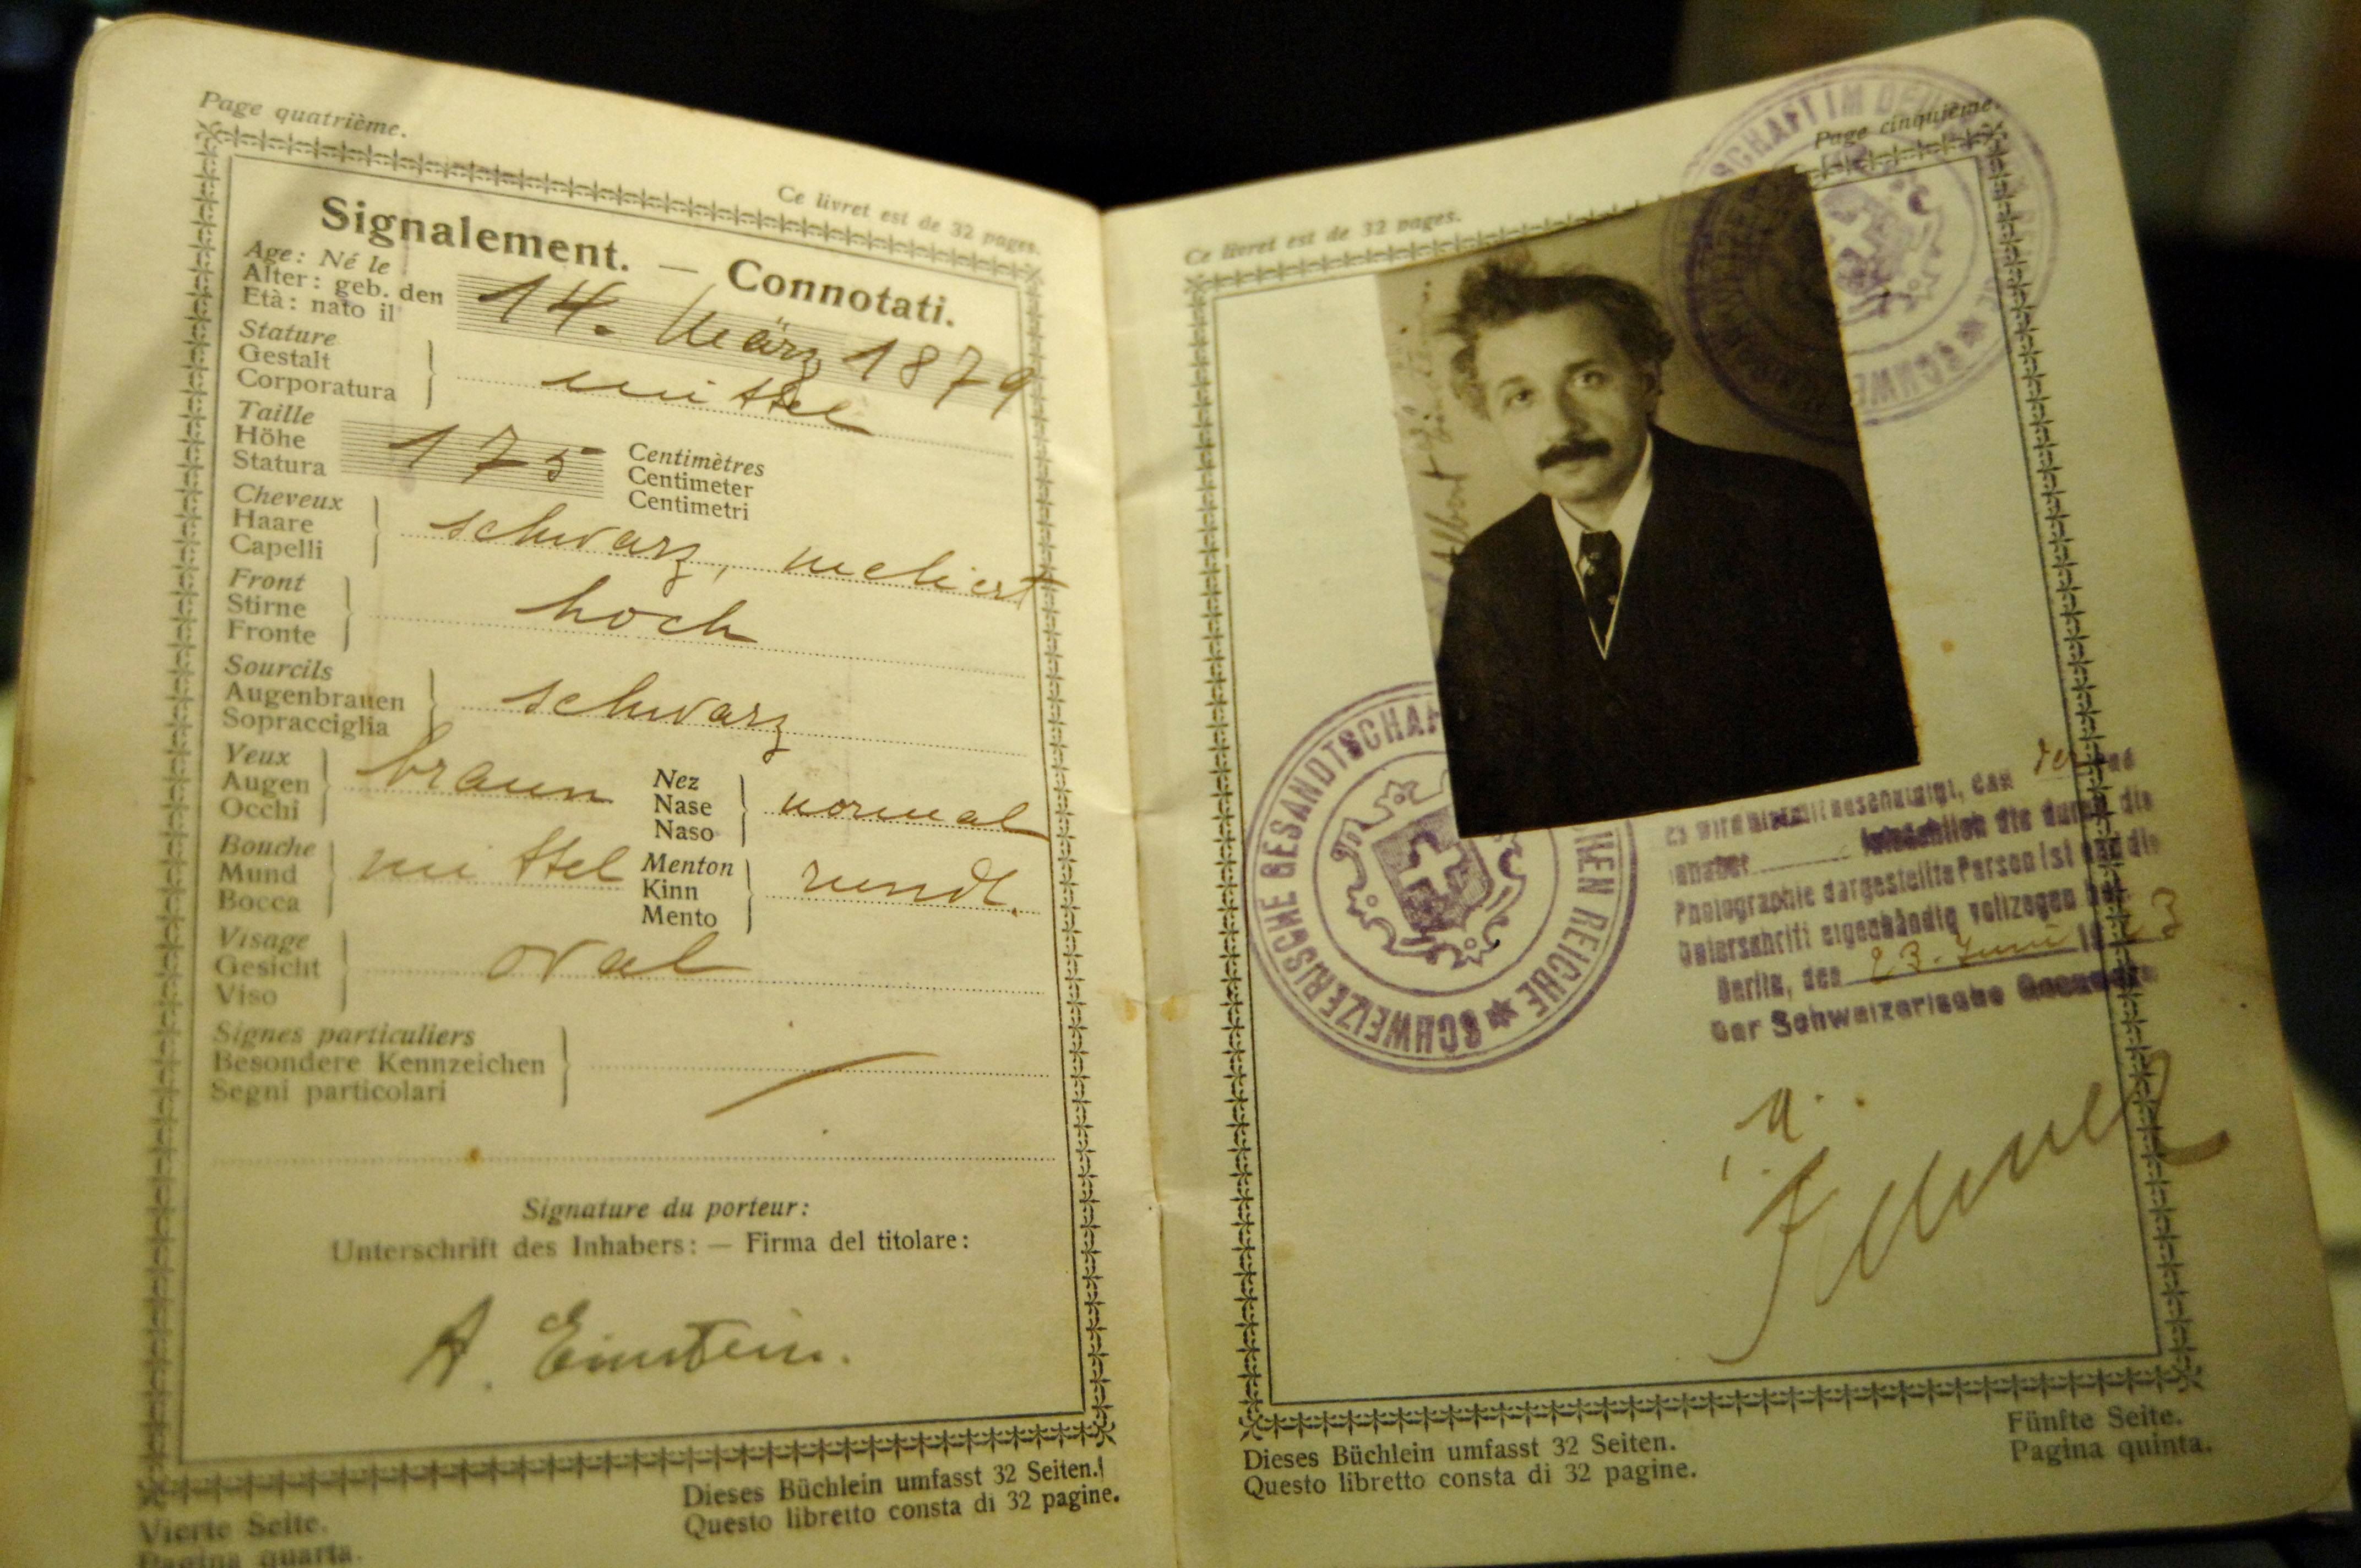 Photo of Albert Einstein's original passport